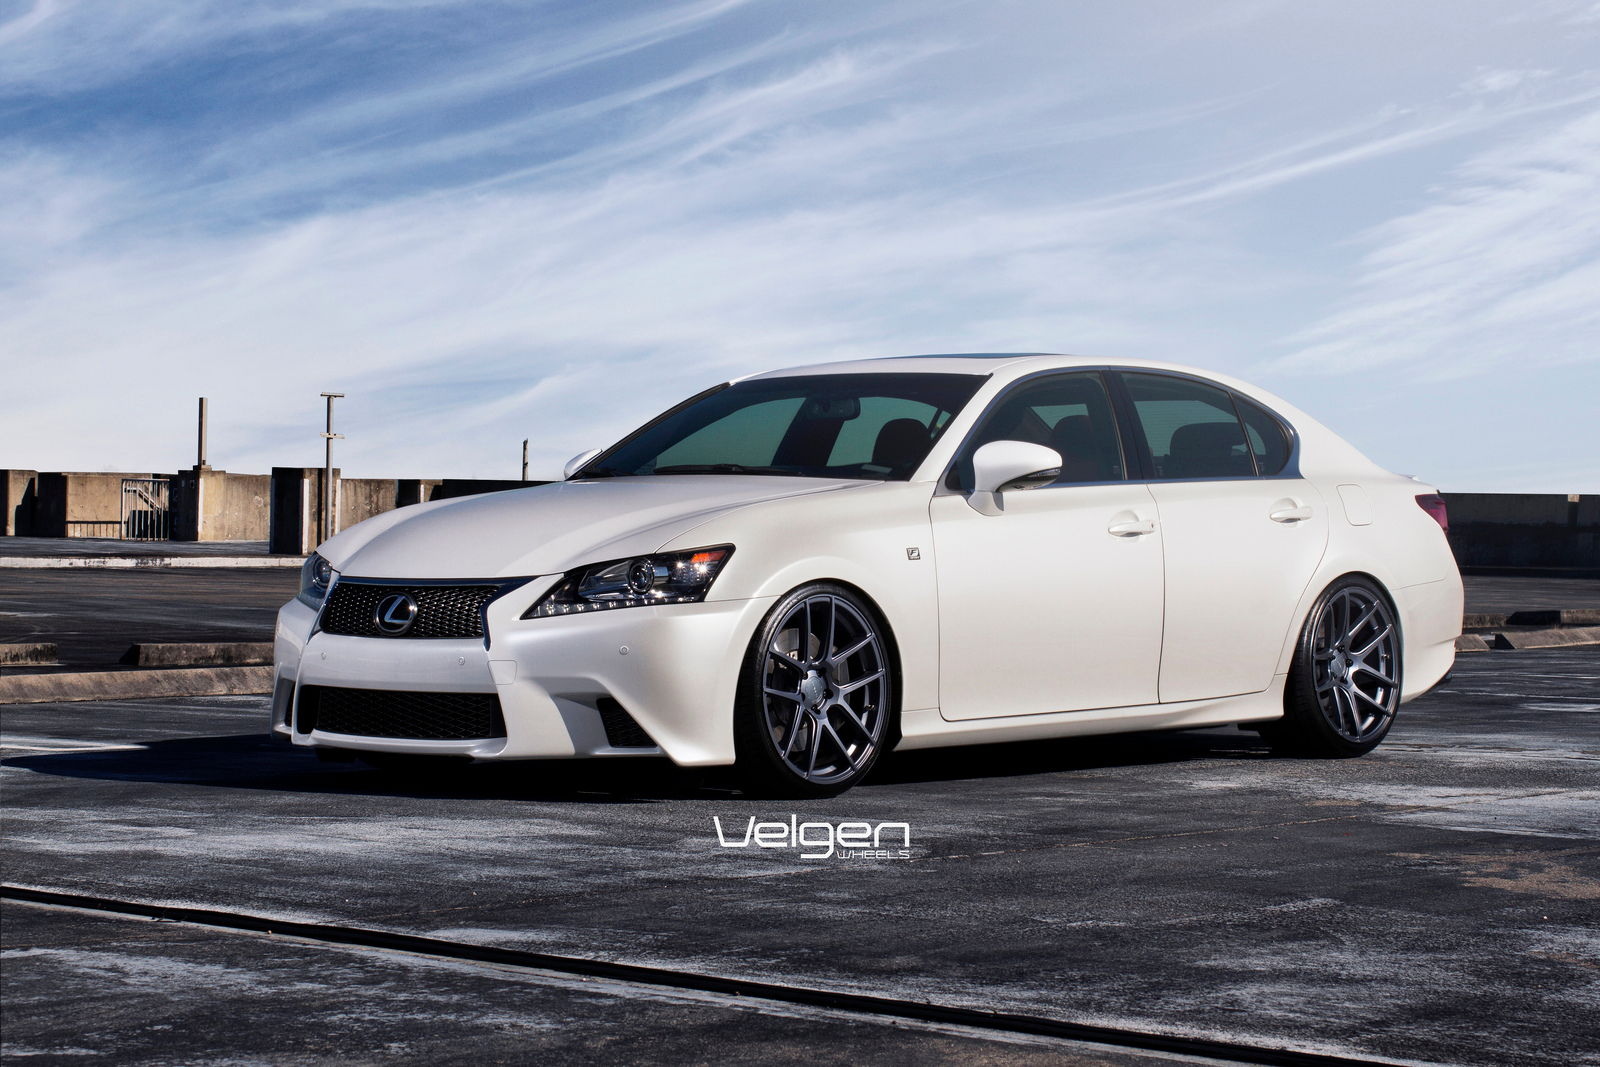 lexus gs 350 f sport velgen wheels vmb5 clublexus lexus forum discussion. Black Bedroom Furniture Sets. Home Design Ideas